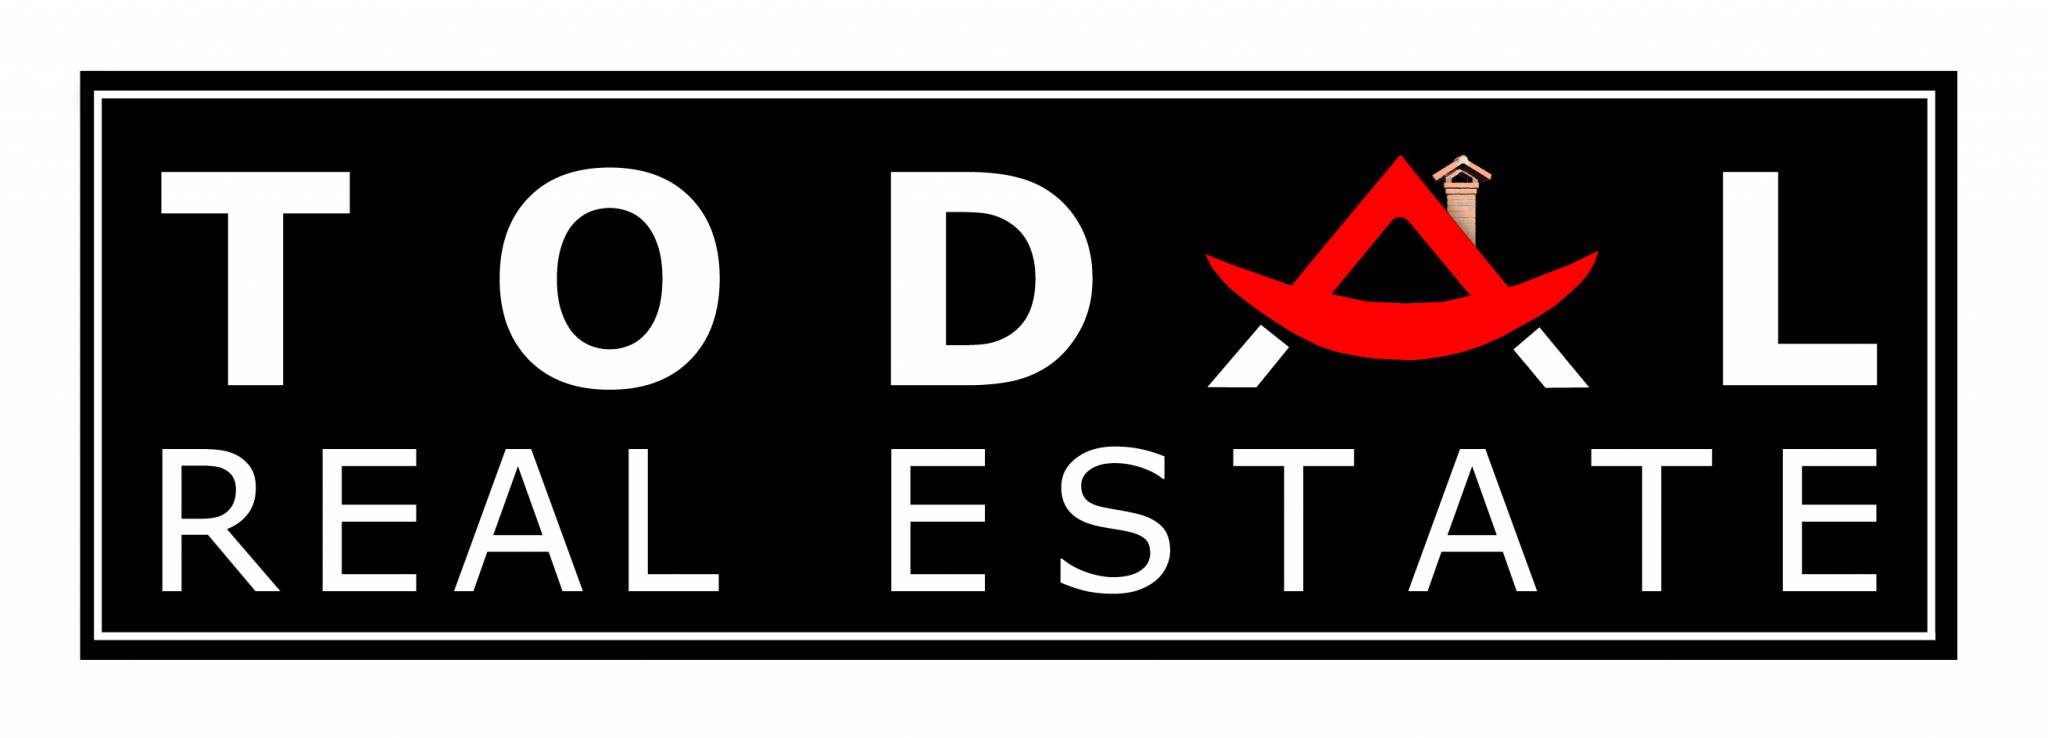 Todal Real Estate S.A.S.